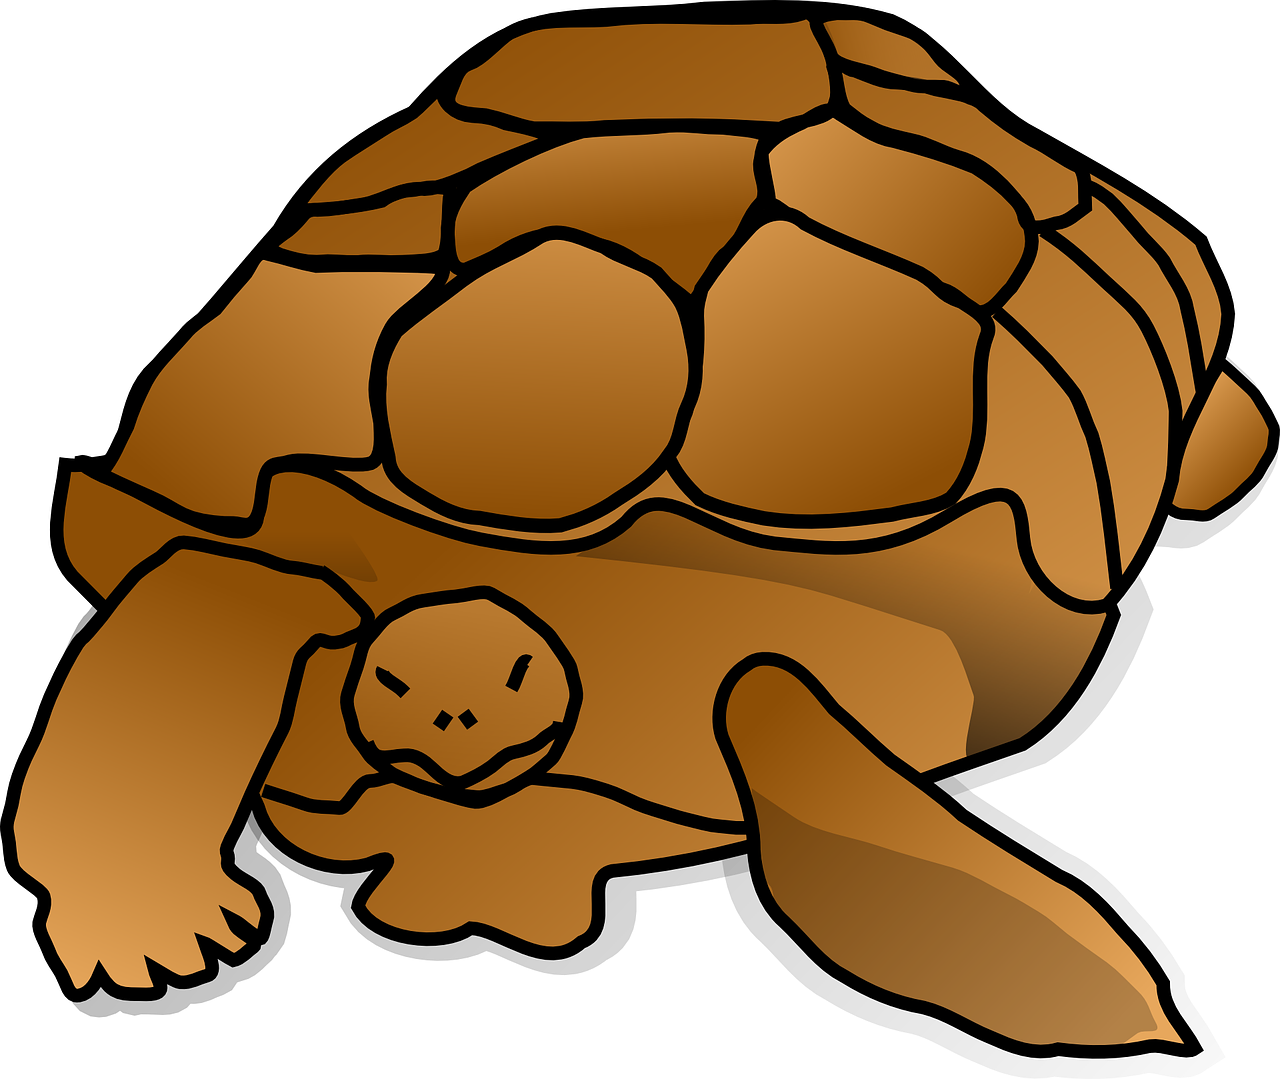 turtle,shell,large,animal,retile,amphibian,wildlife,tropical,marine,aquatic,sea,free vector graphics,free pictures, free photos, free images, royalty free, free illustrations, public domain